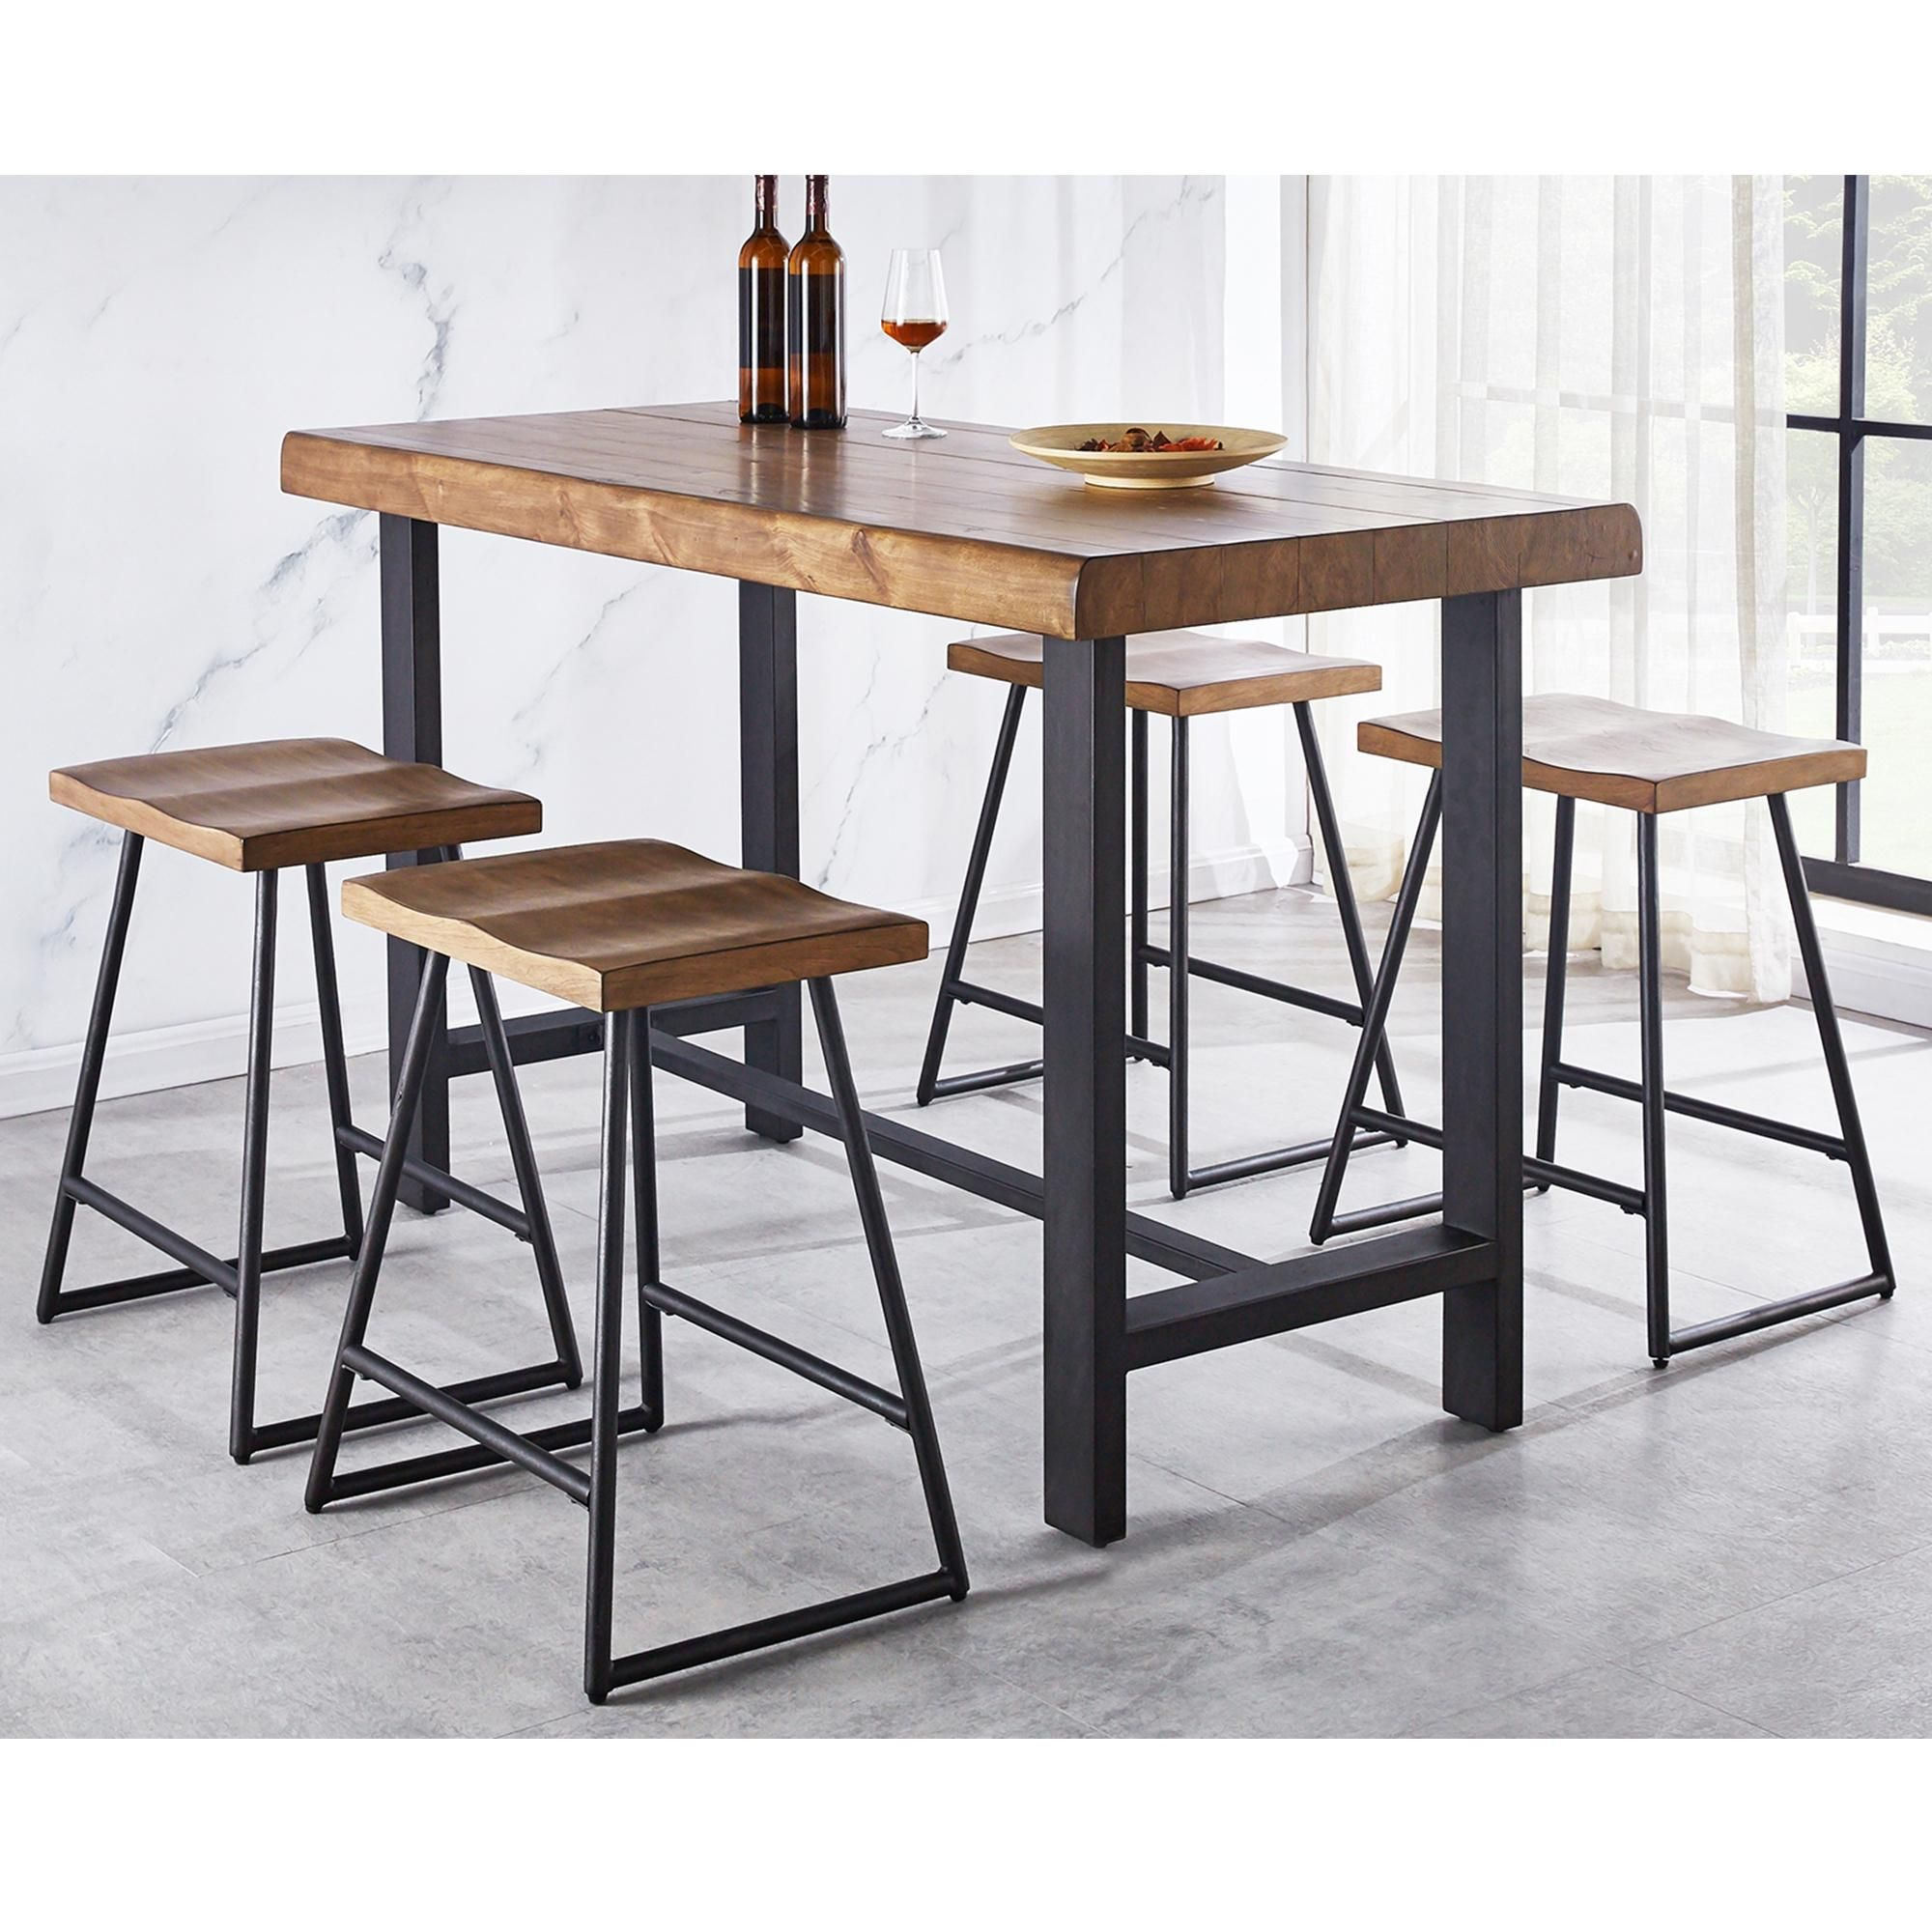 Steve Silver Landon Counter Table And 4 Stools In Natural Honey Nfm Counter Height Dining Sets Counter Height Dining Table Counter Table